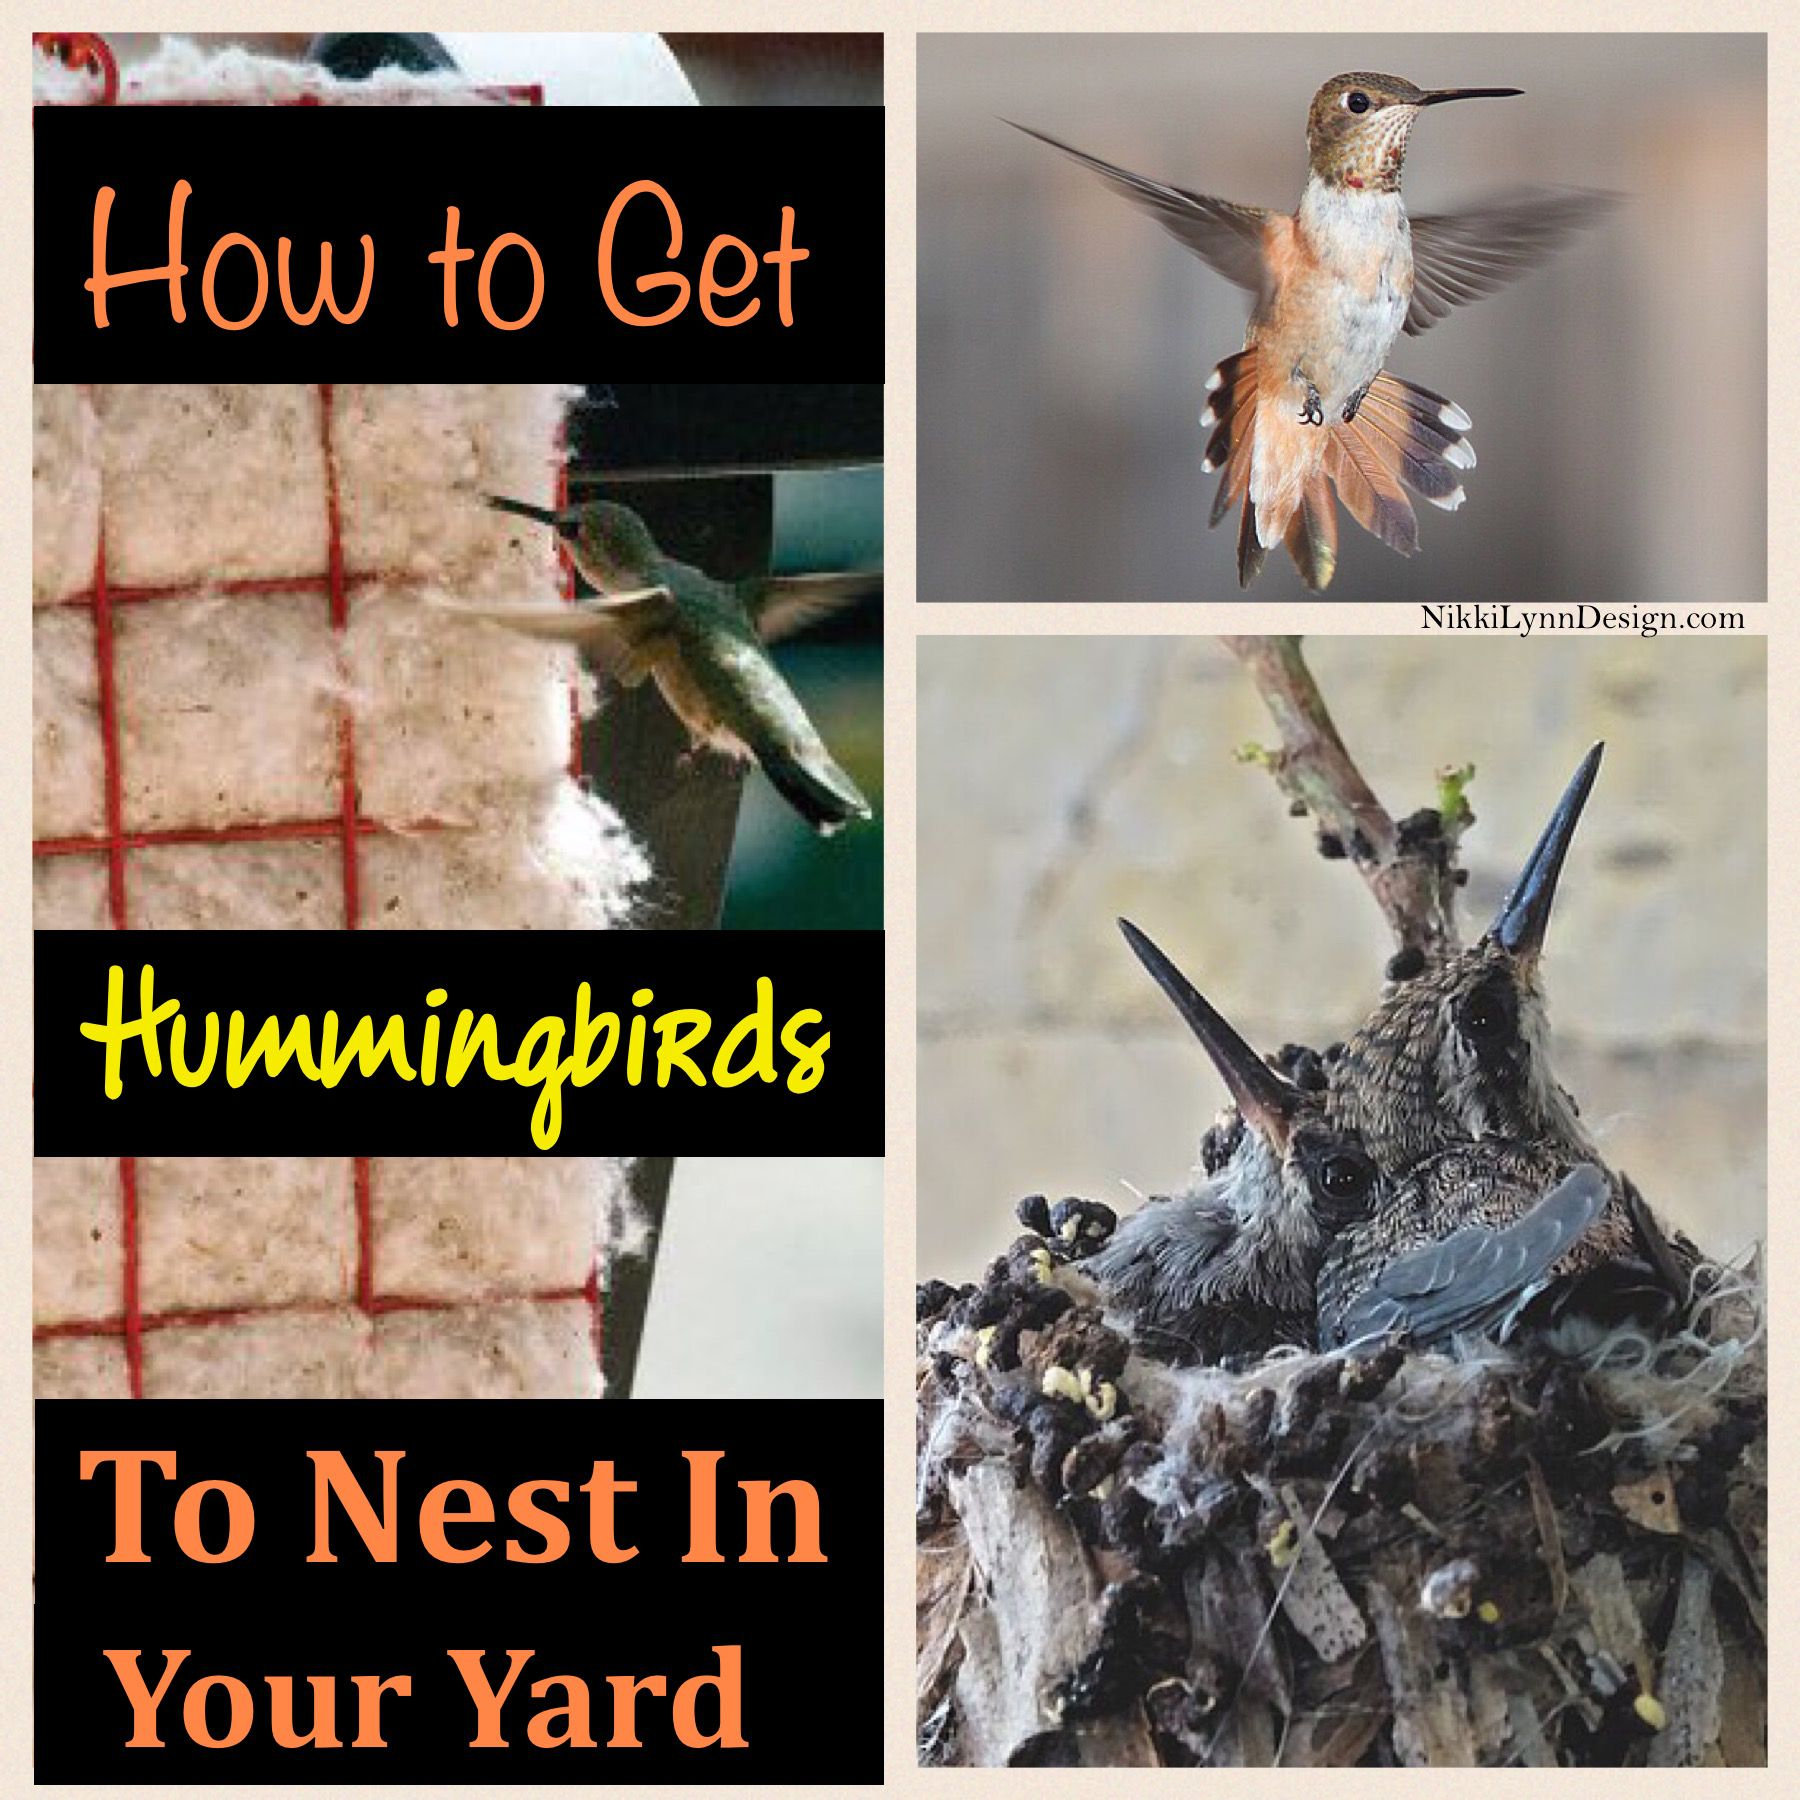 How to Get Hummingbird to Nest in Your Yard If you would